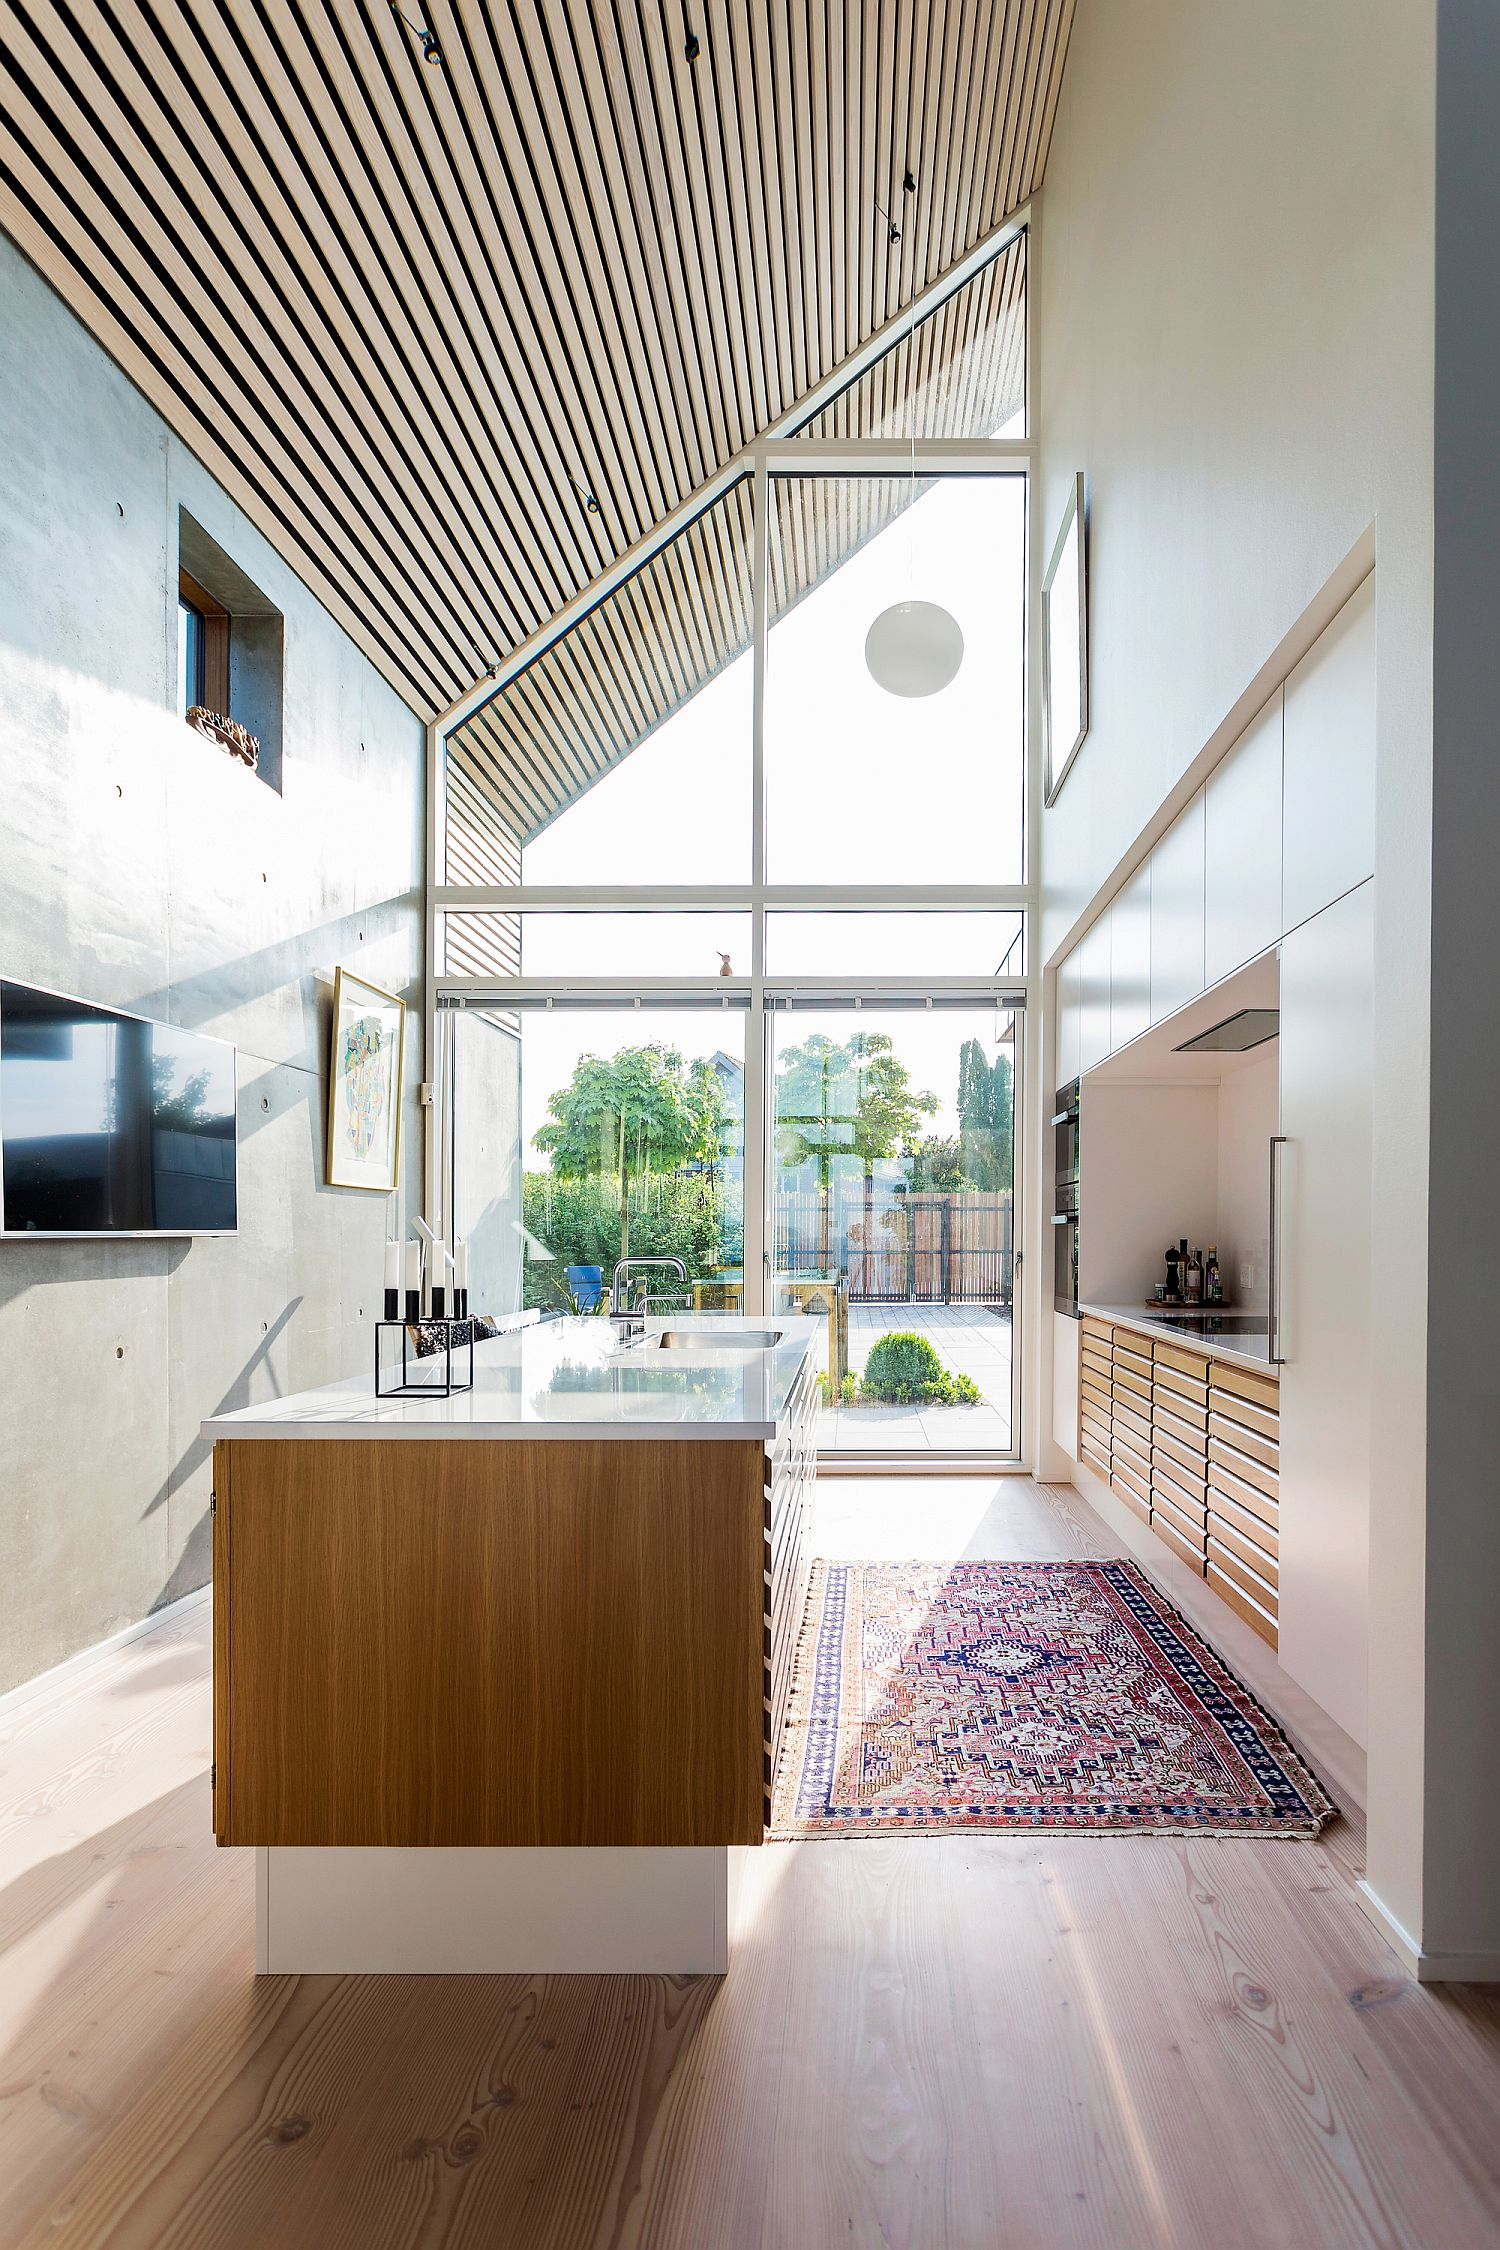 Angular roof, large glass windows and high ceilings give the interior an airy, modern appeal